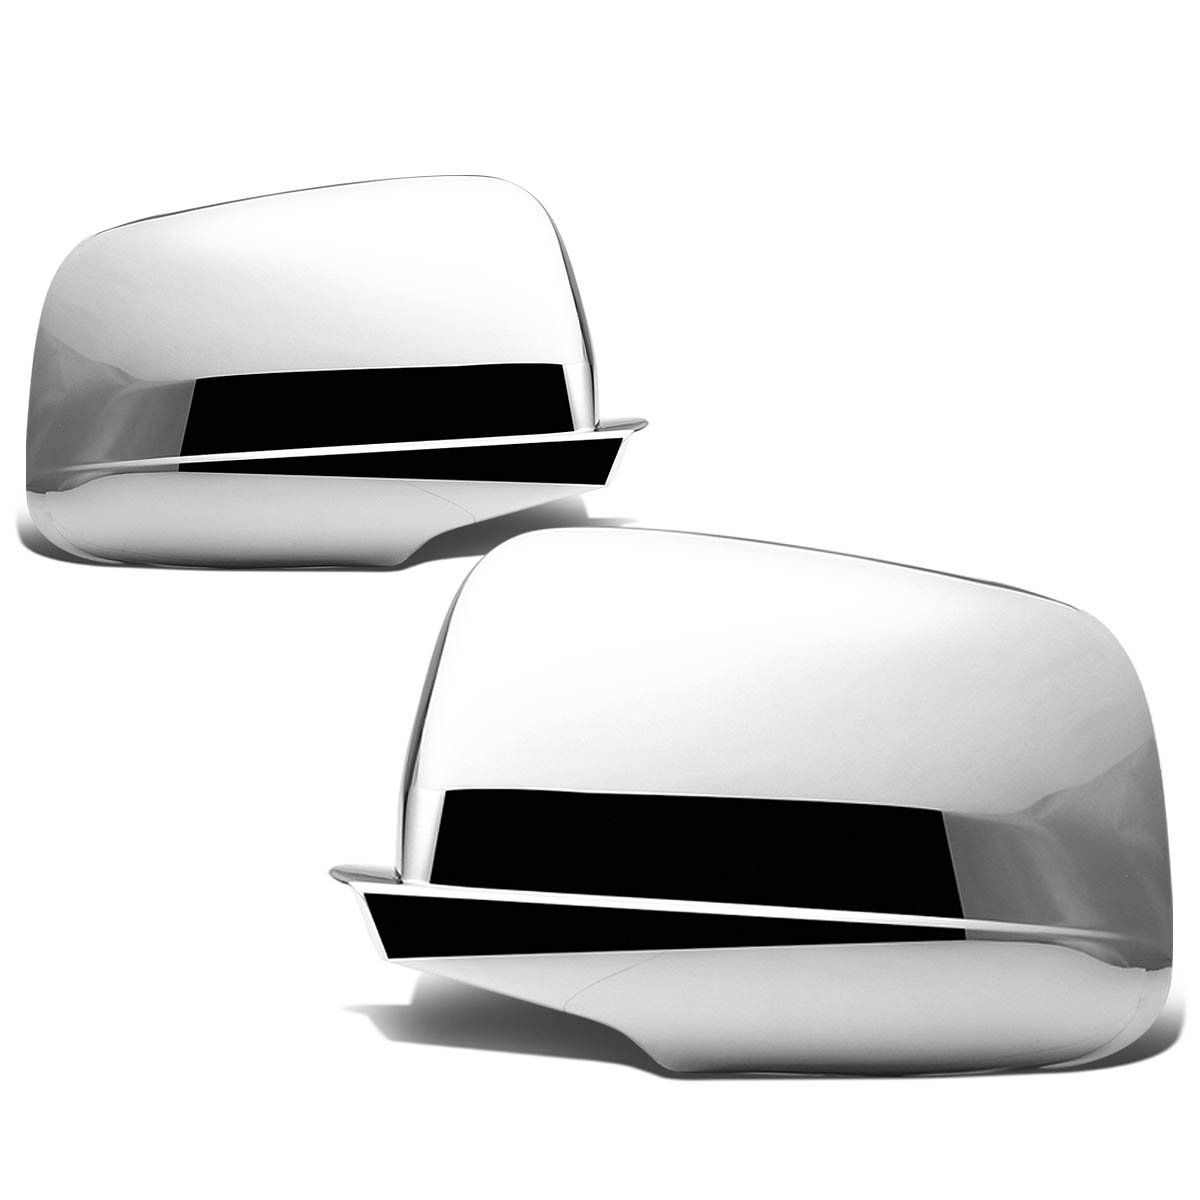 2011 2015 Jeep Grand Cherokee Chrome Plated Full Side Mirror Cover Trim Leveling Kit